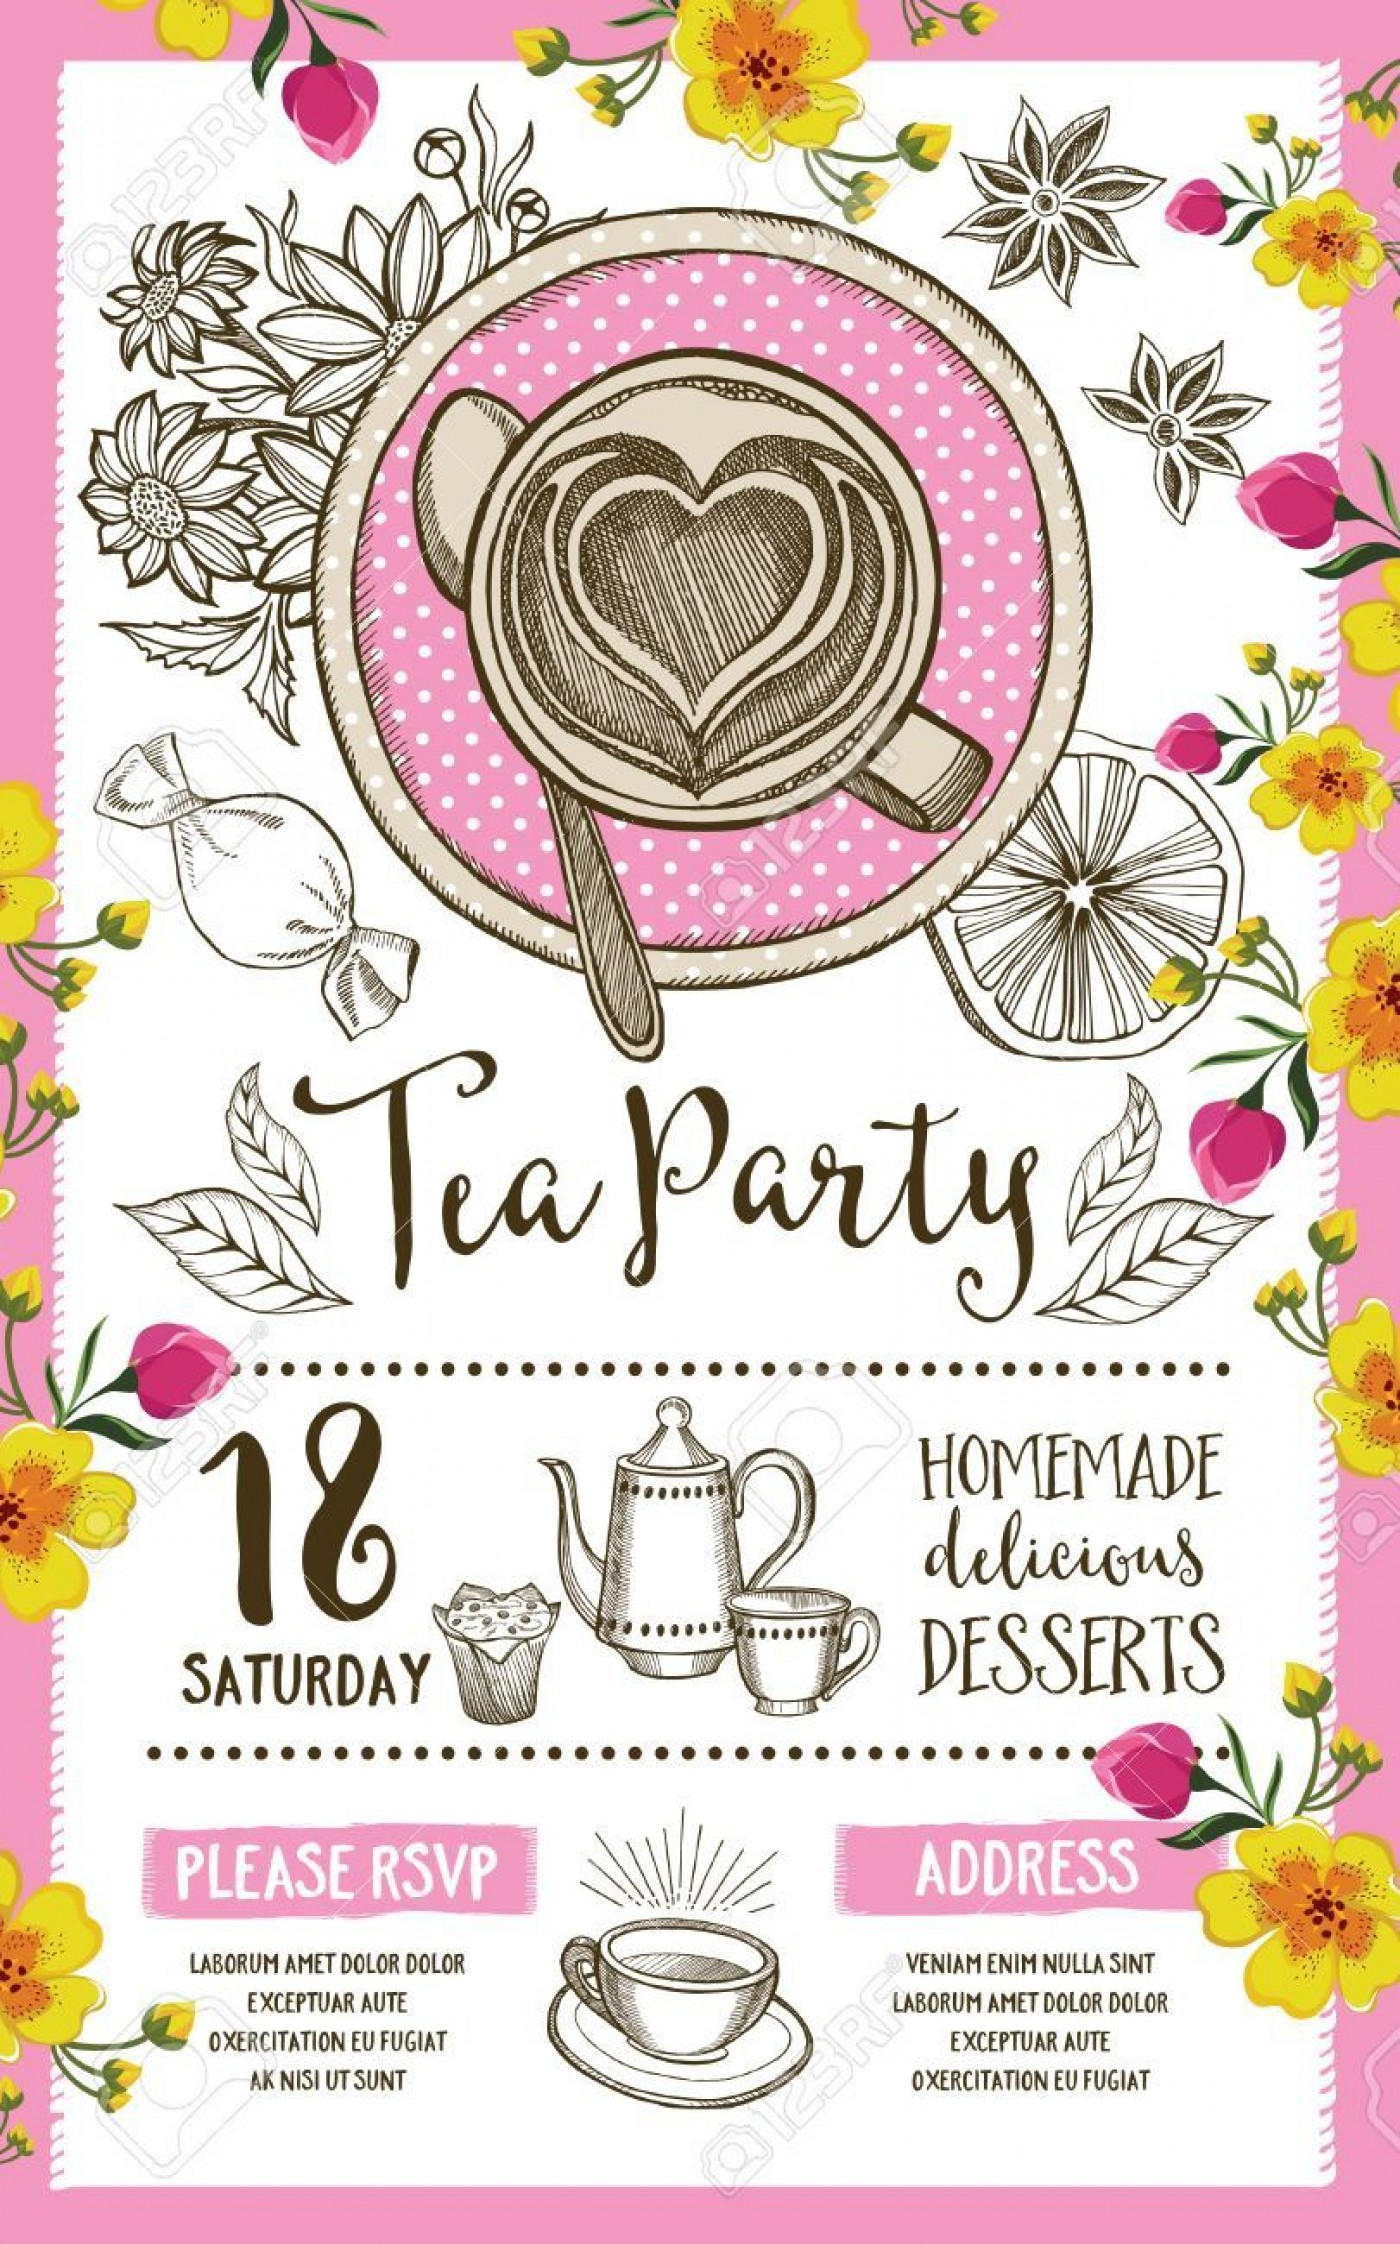 004 Wonderful Tea Party Invitation Template Inspiration  Card Victorian Wording For Bridal Shower1400